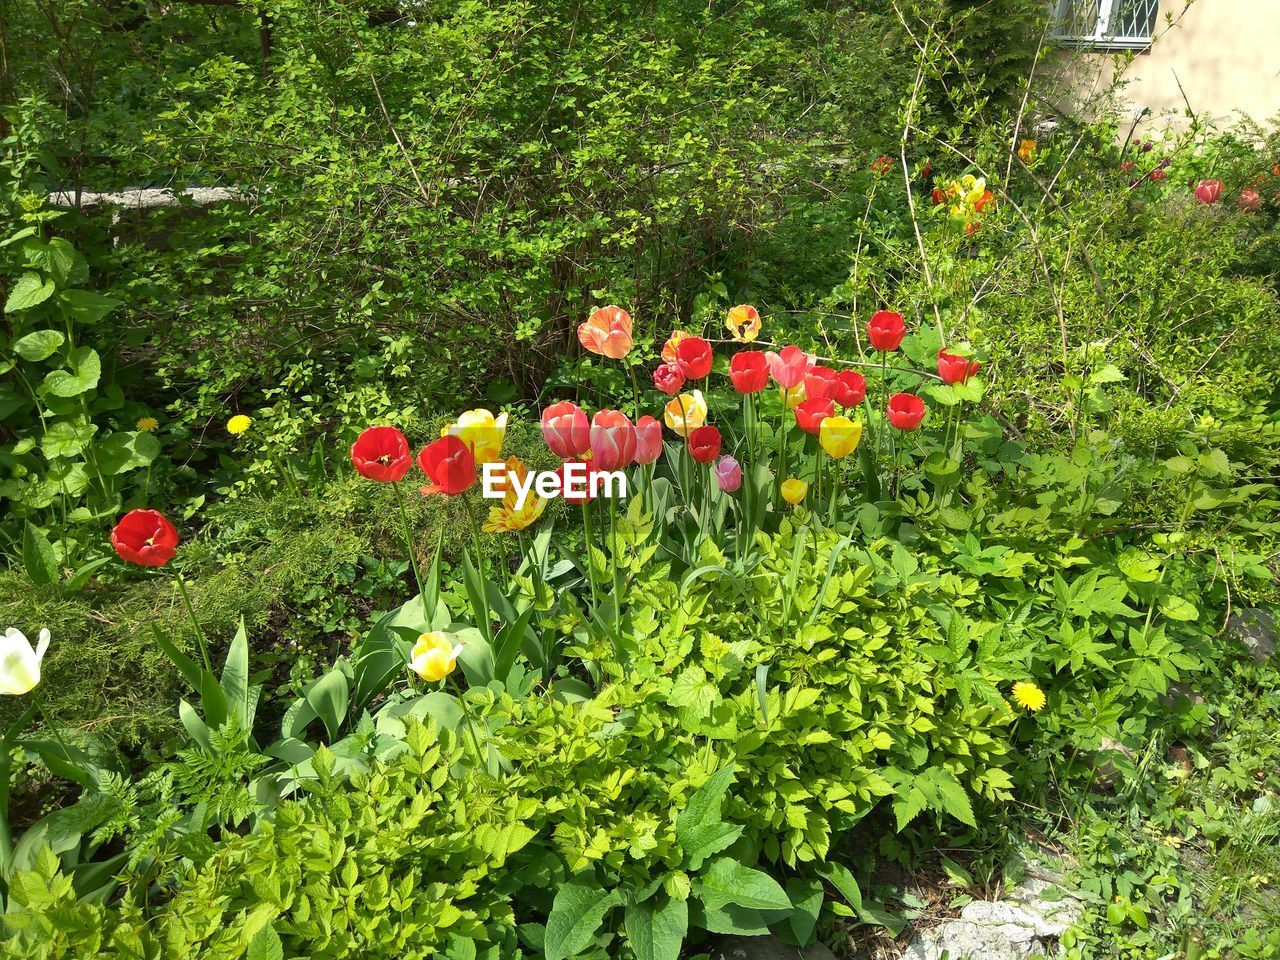 flower, growth, plant, nature, poppy, red, outdoors, beauty in nature, blooming, flowerbed, freshness, no people, day, flower head